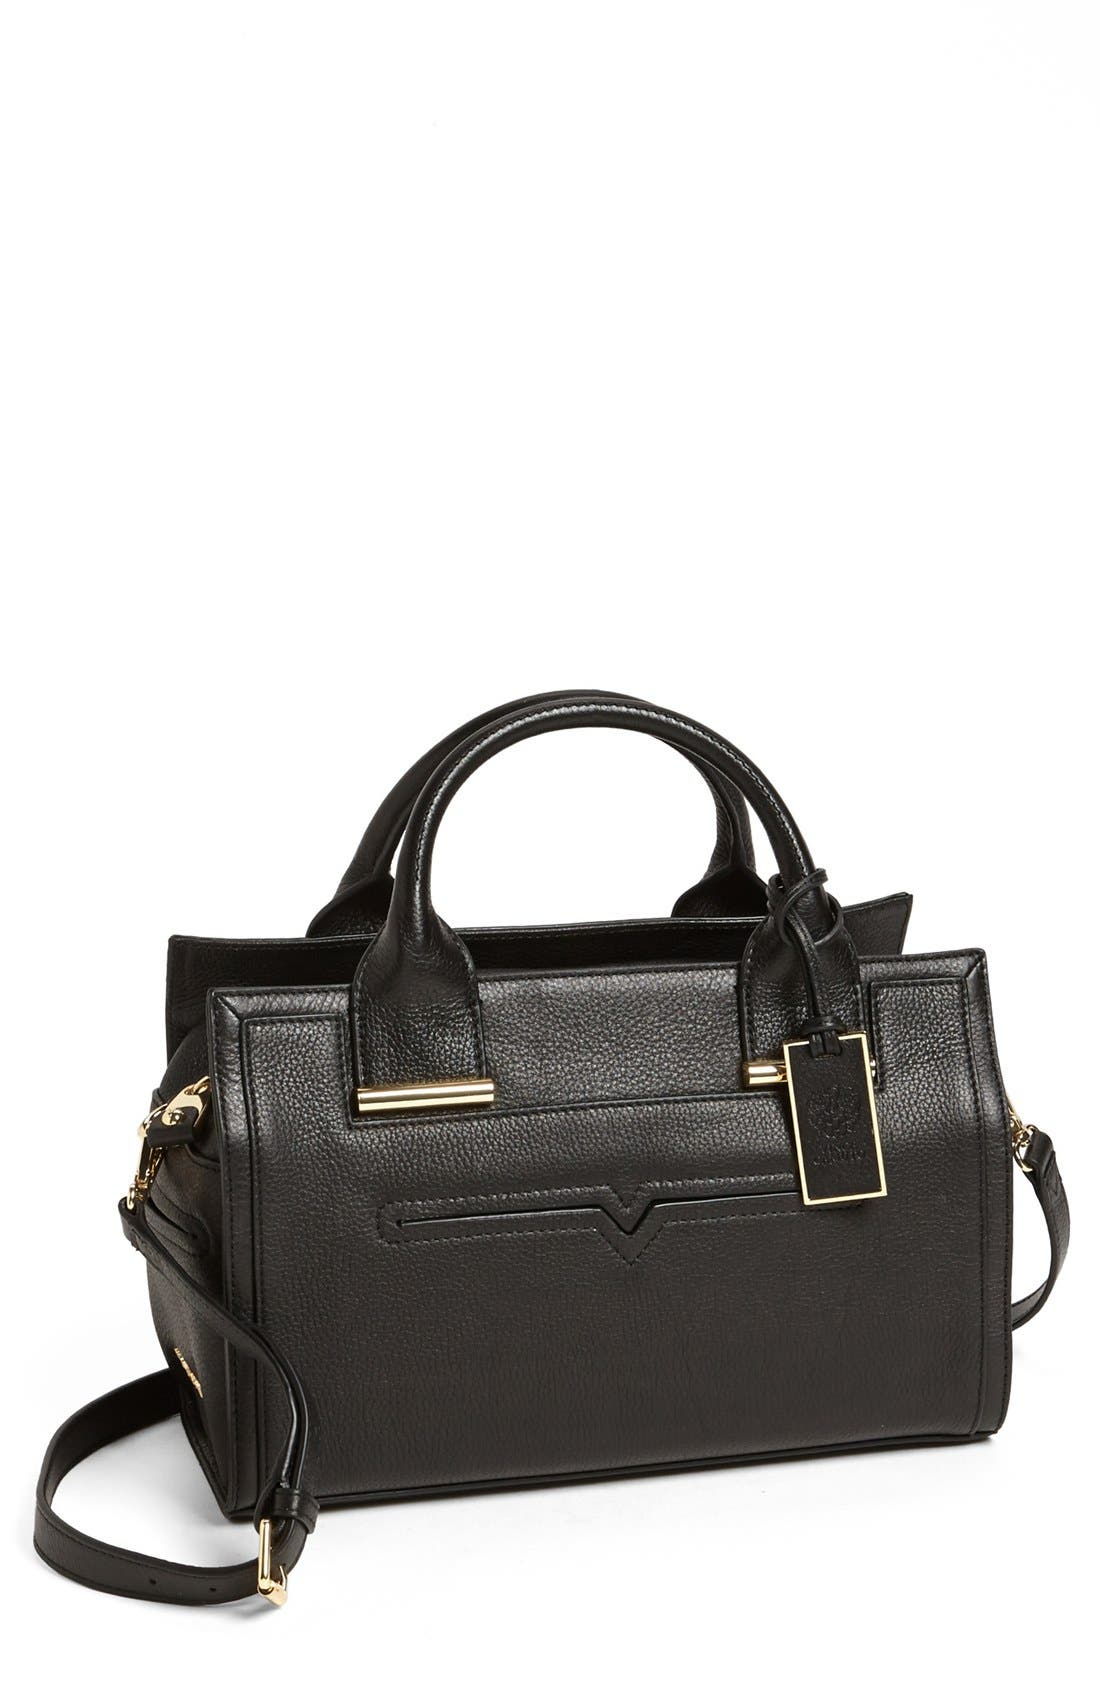 Main Image - Vince Camuto 'Billy - Small' Satchel